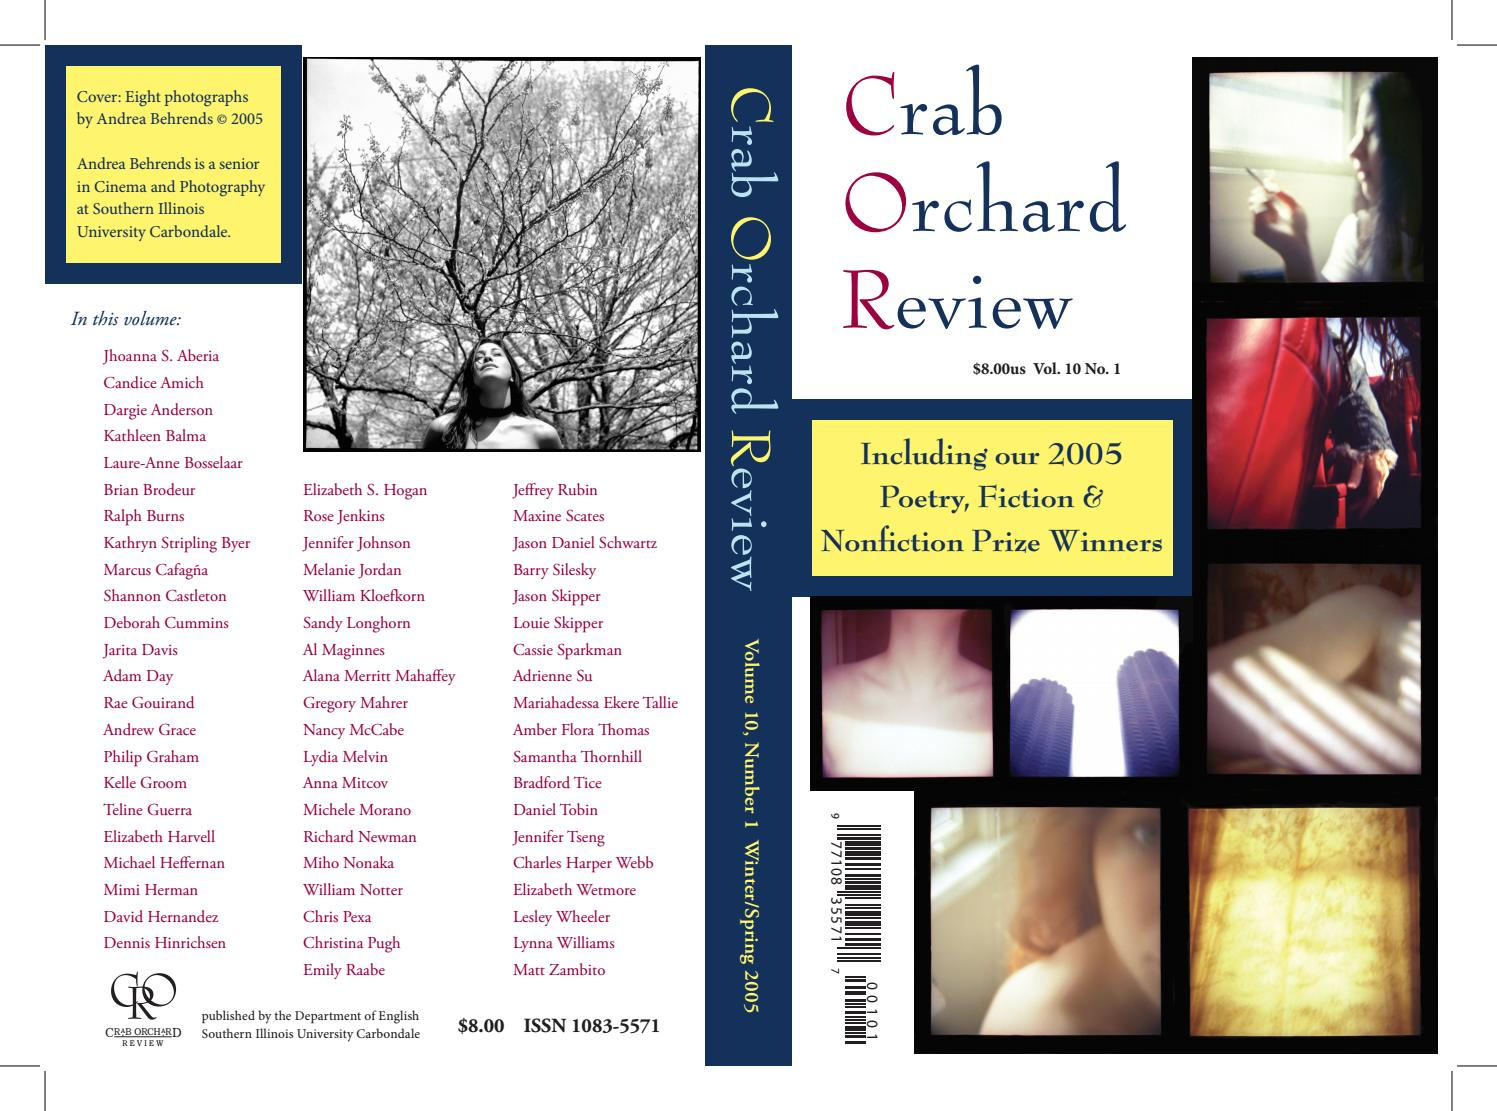 f803fba6965 Crab Orchard Review Vol 10 No 1 W/S 2005 by Crab Orchard Review - issuu